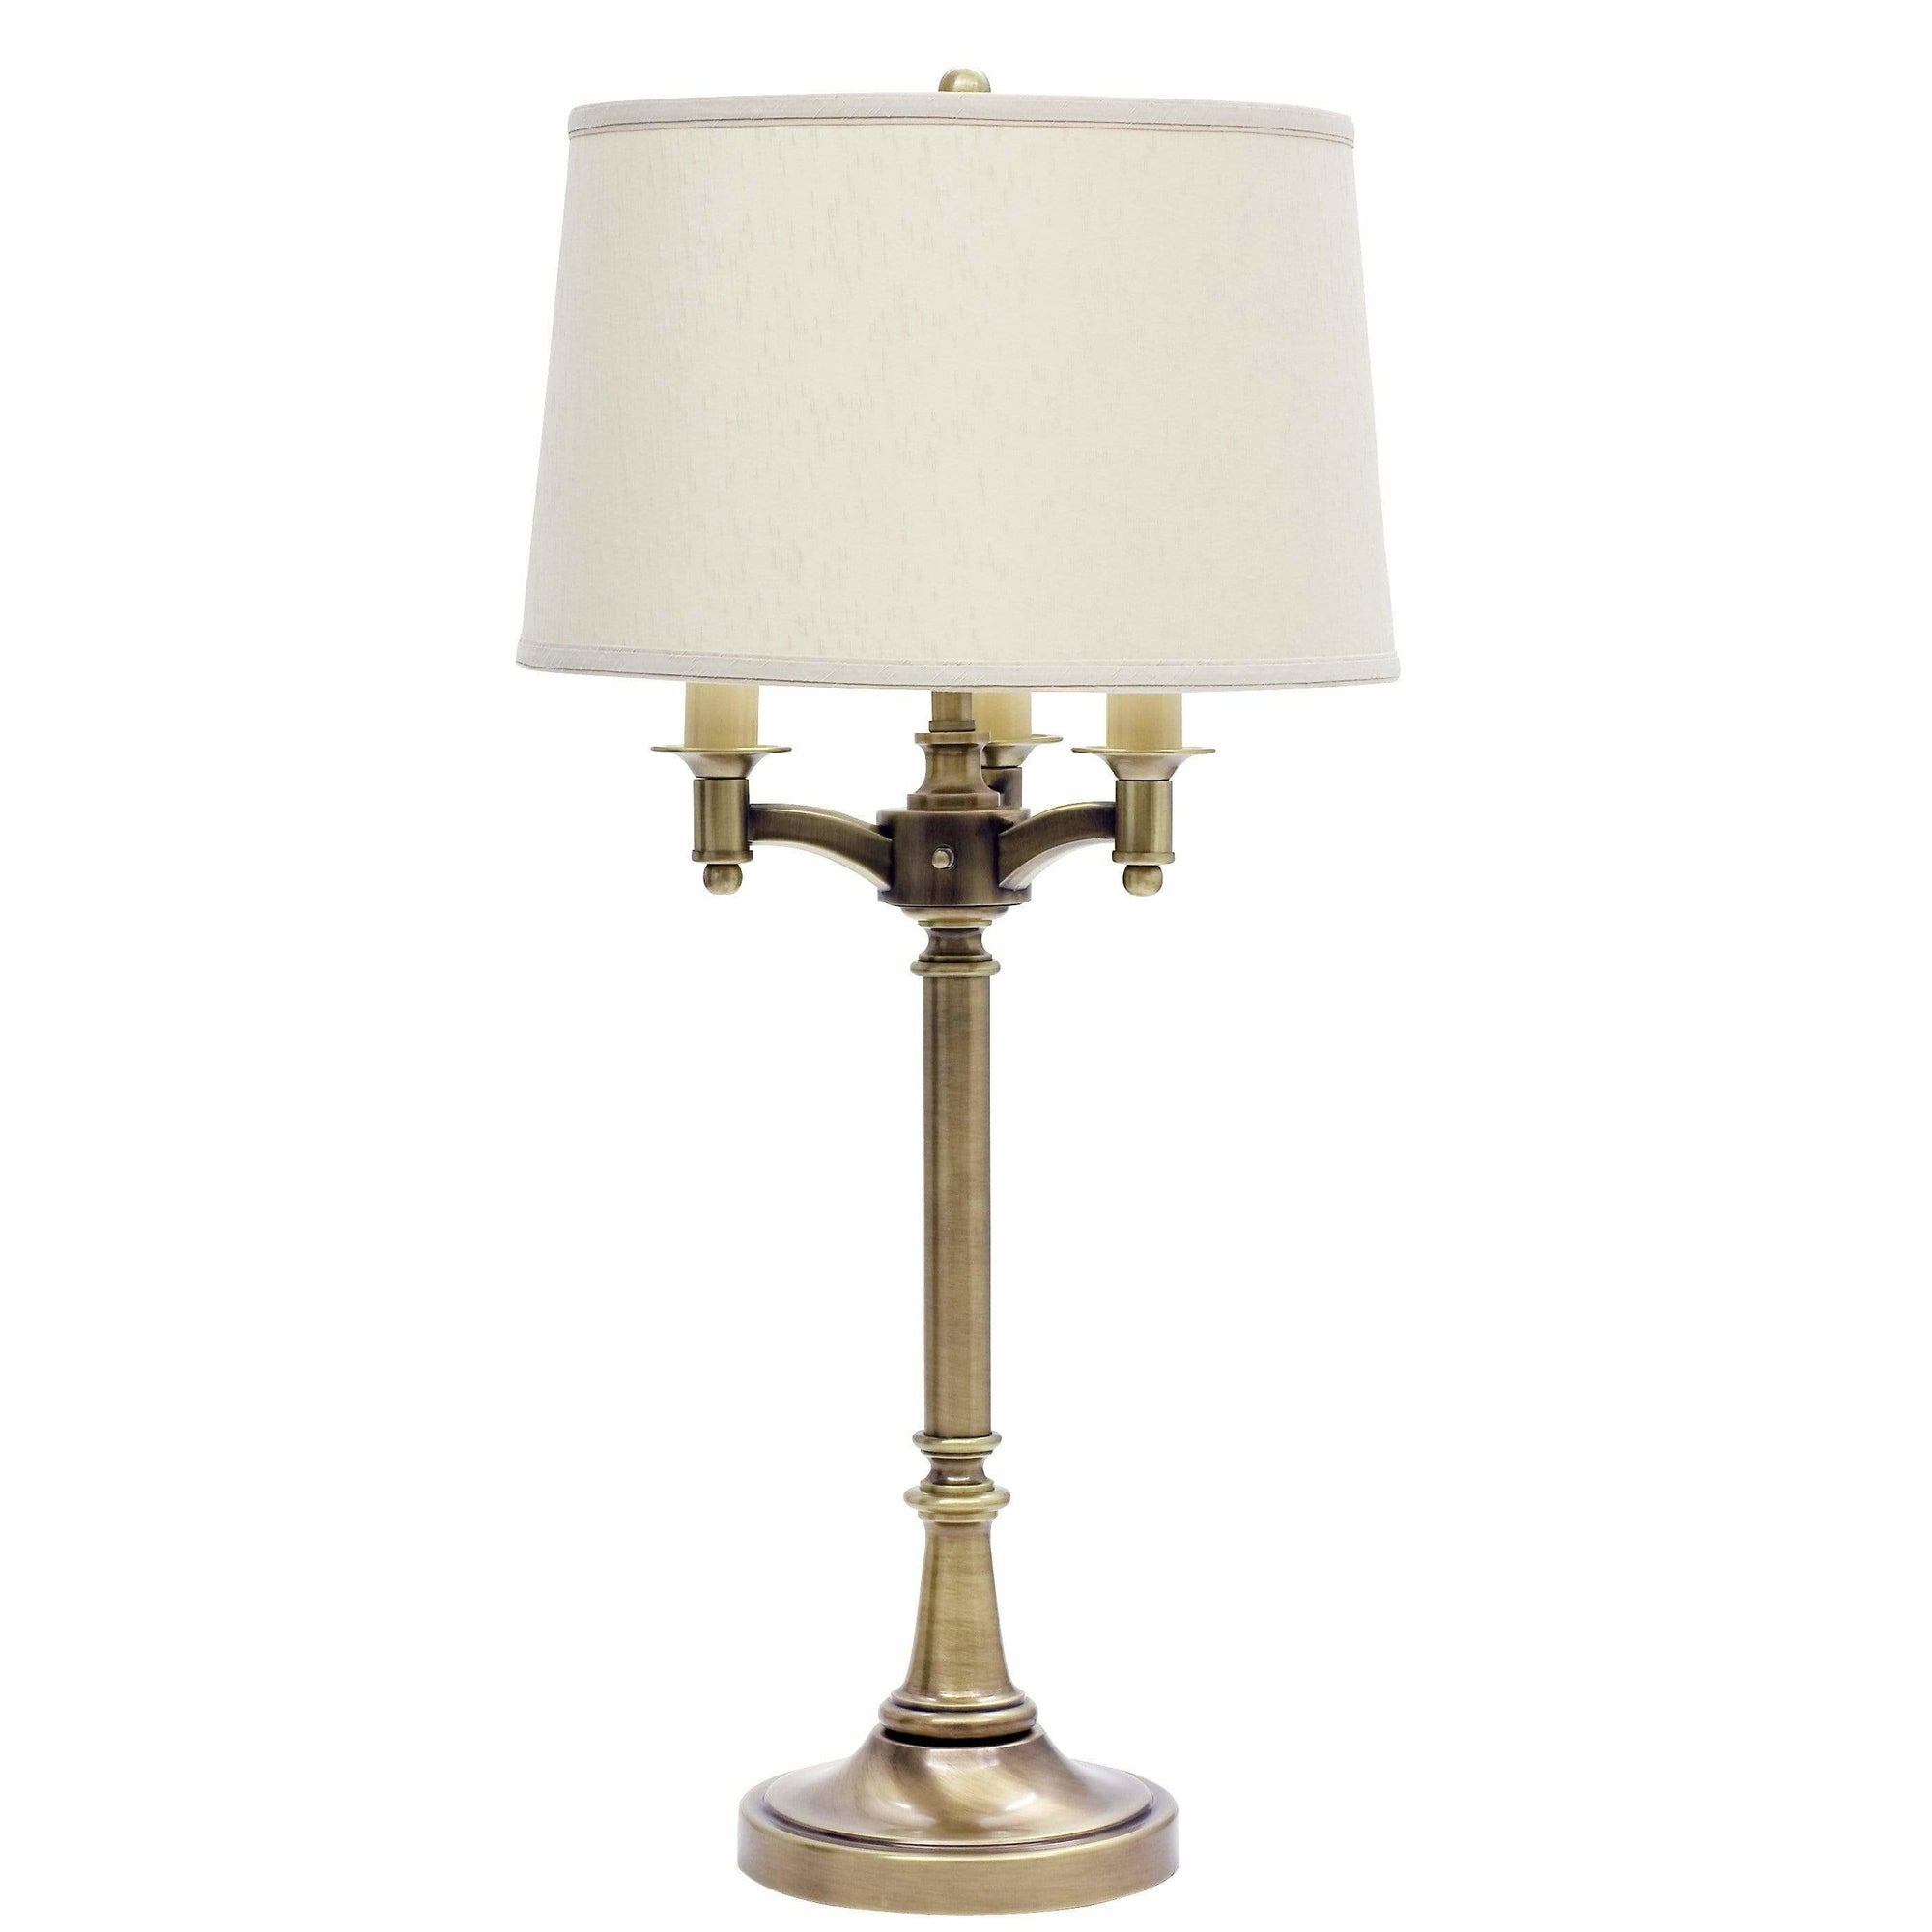 House Of Troy Table Lamps Lancaster Six-Way Table Lamp by House Of Troy L850-AB